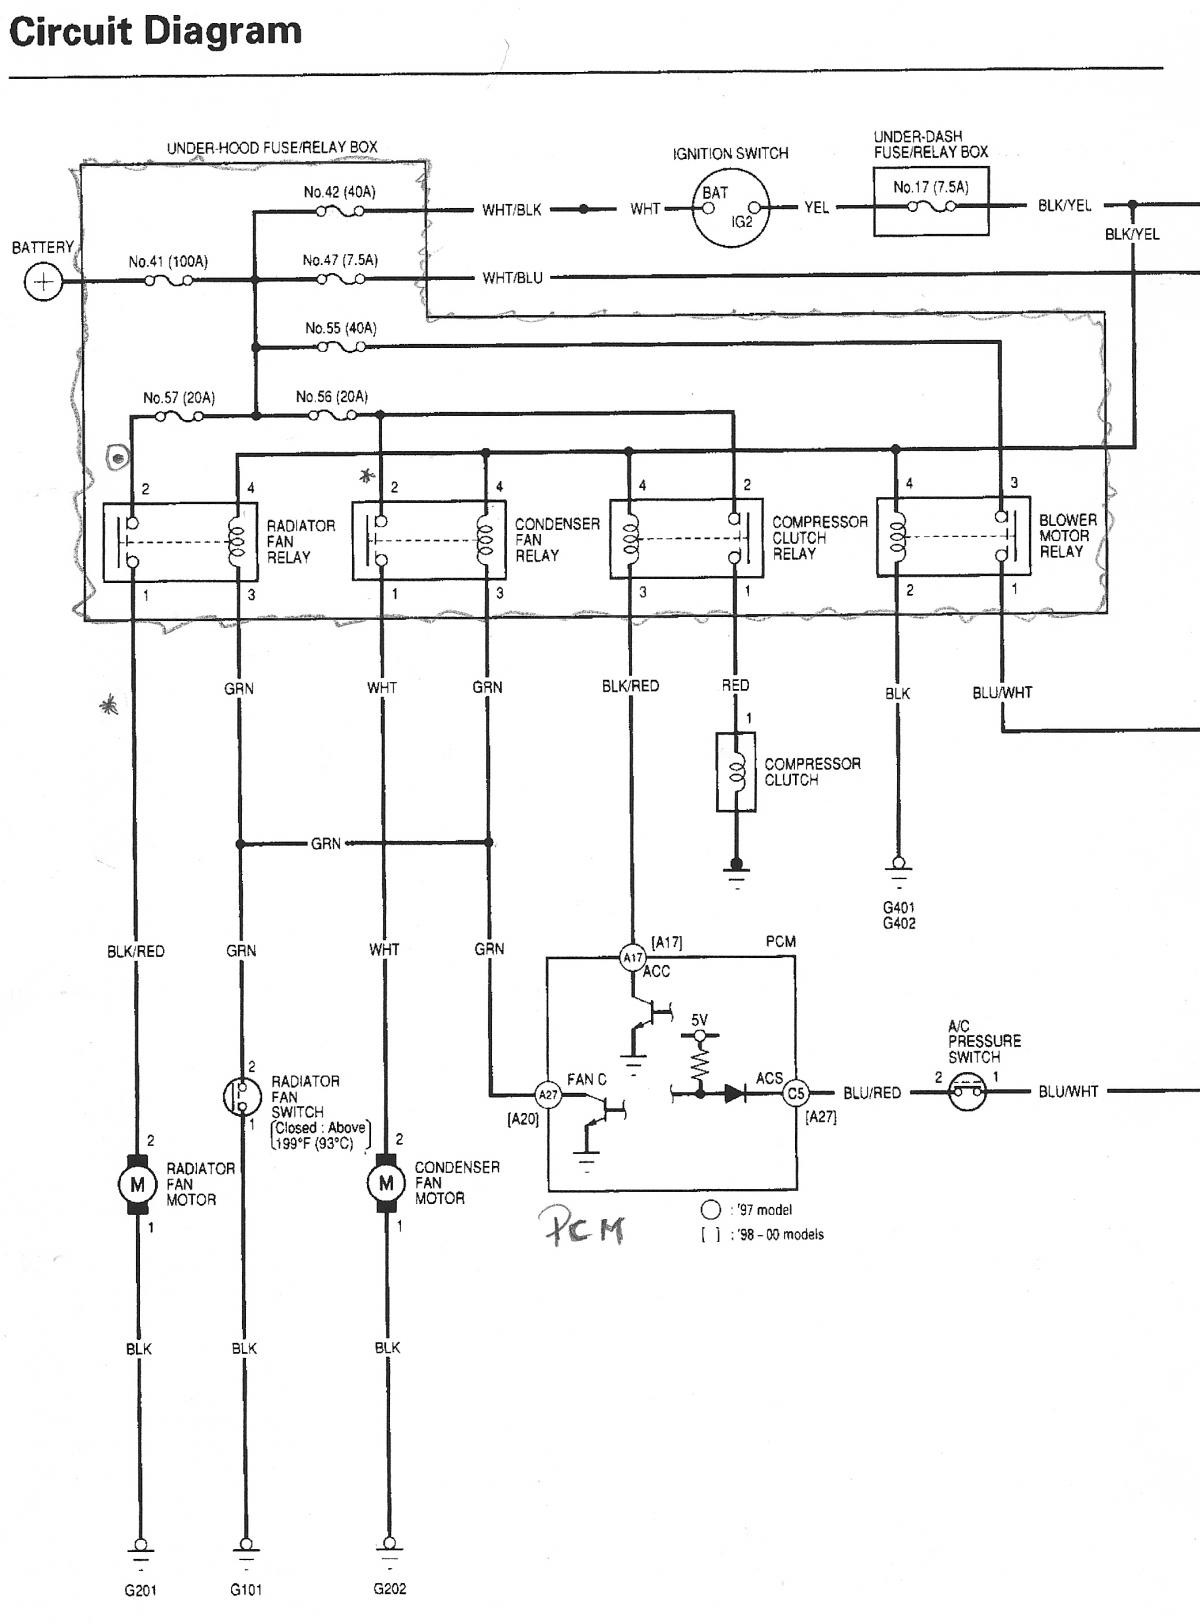 2001 Honda Cr V Engine Diagram Schematic Wiring Diagrams Town Car Fuse Box Crv Library Parts